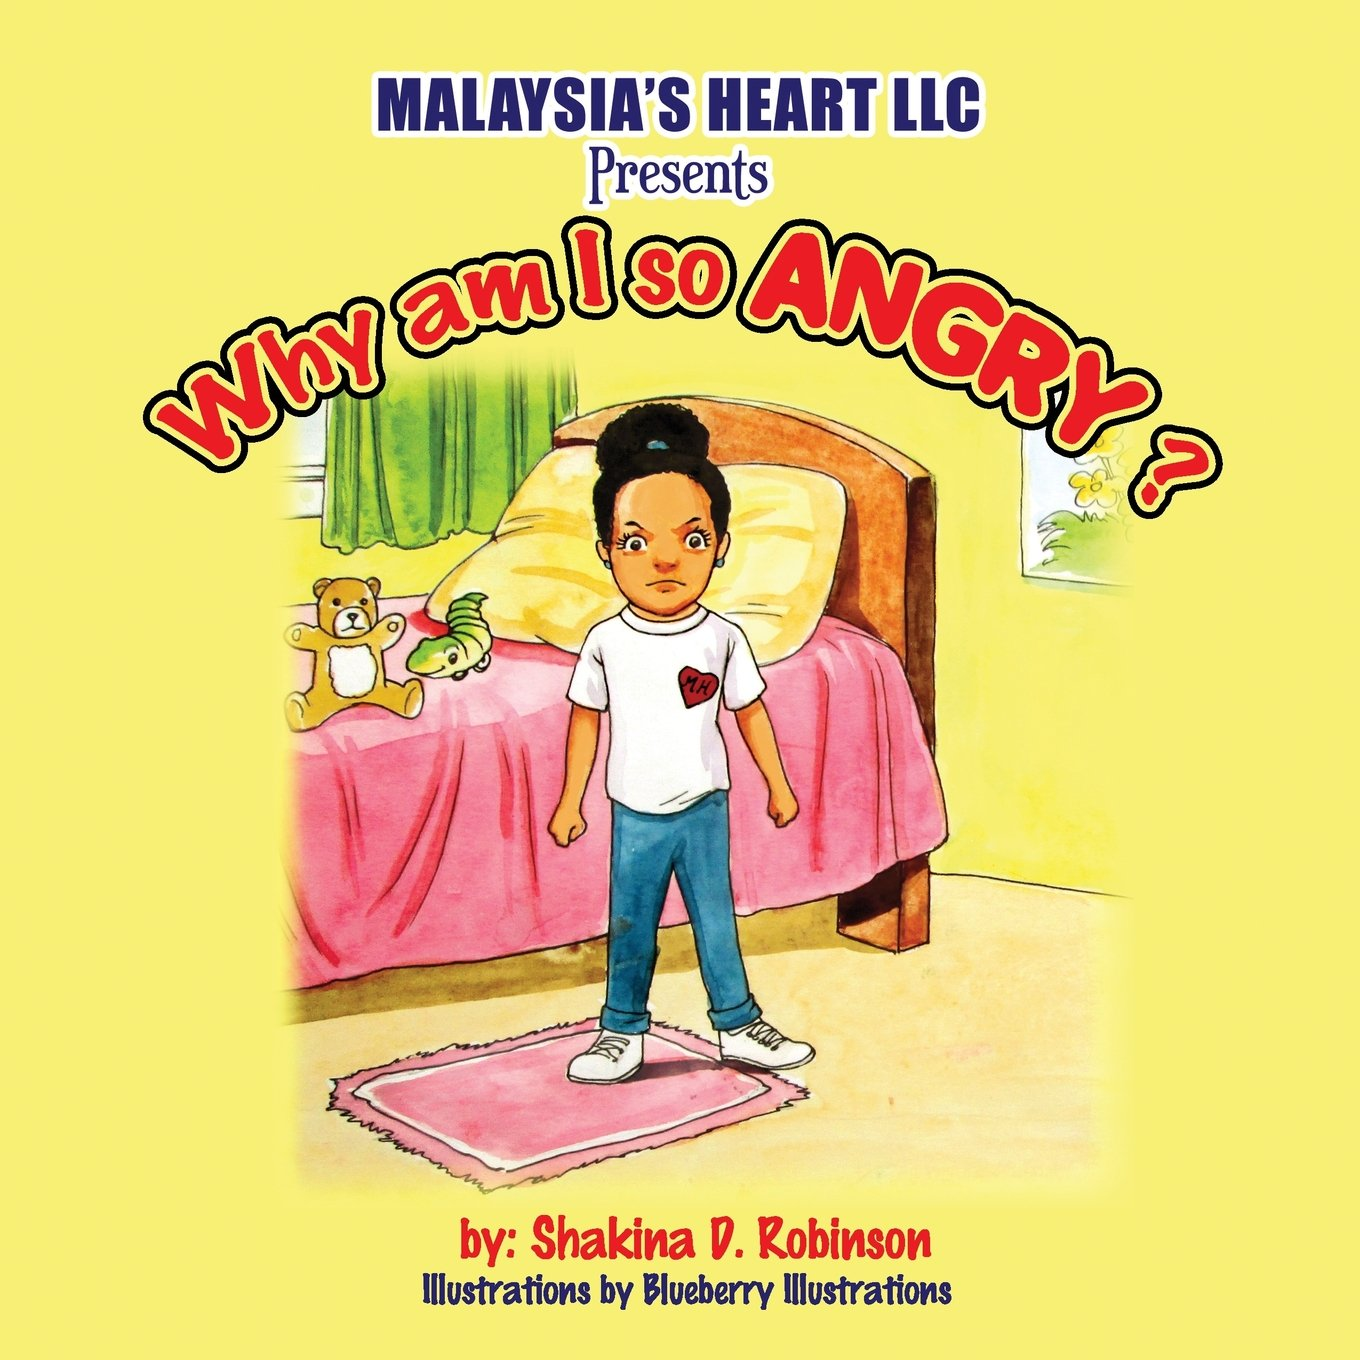 Tempat Jual Shakina The Poet Available For All Ages Valentino Rudy Vr103 1335 Jam Tangan Pria Black Malaysias Heart Llc Presents Why Am I So Angry D Robinson